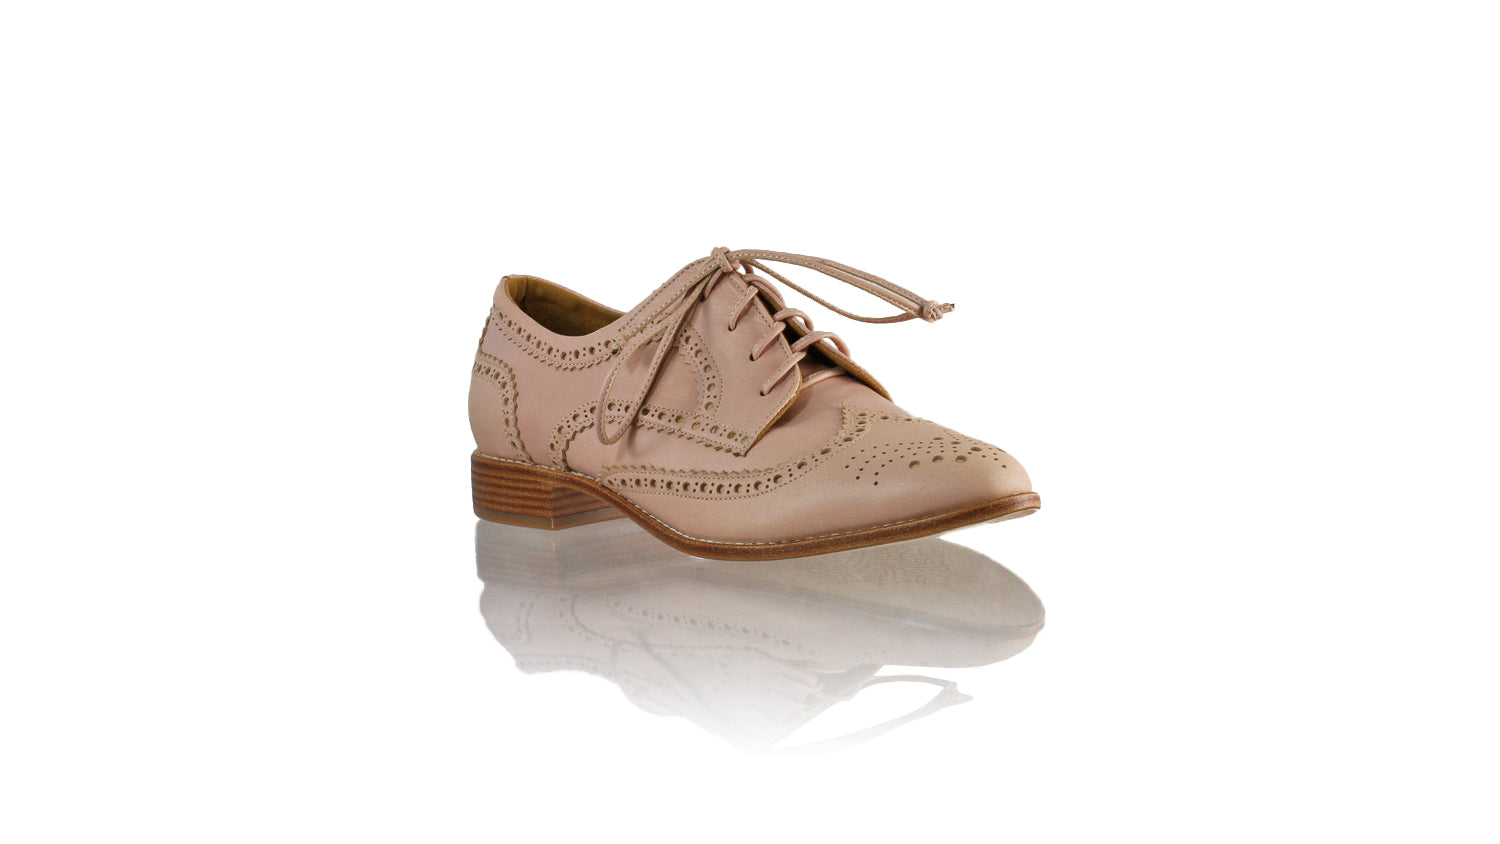 Leather-shoes-Pedro 25mm Flat - Baby Pink Leather-flats laceup-NILUH DJELANTIK-NILUH DJELANTIK